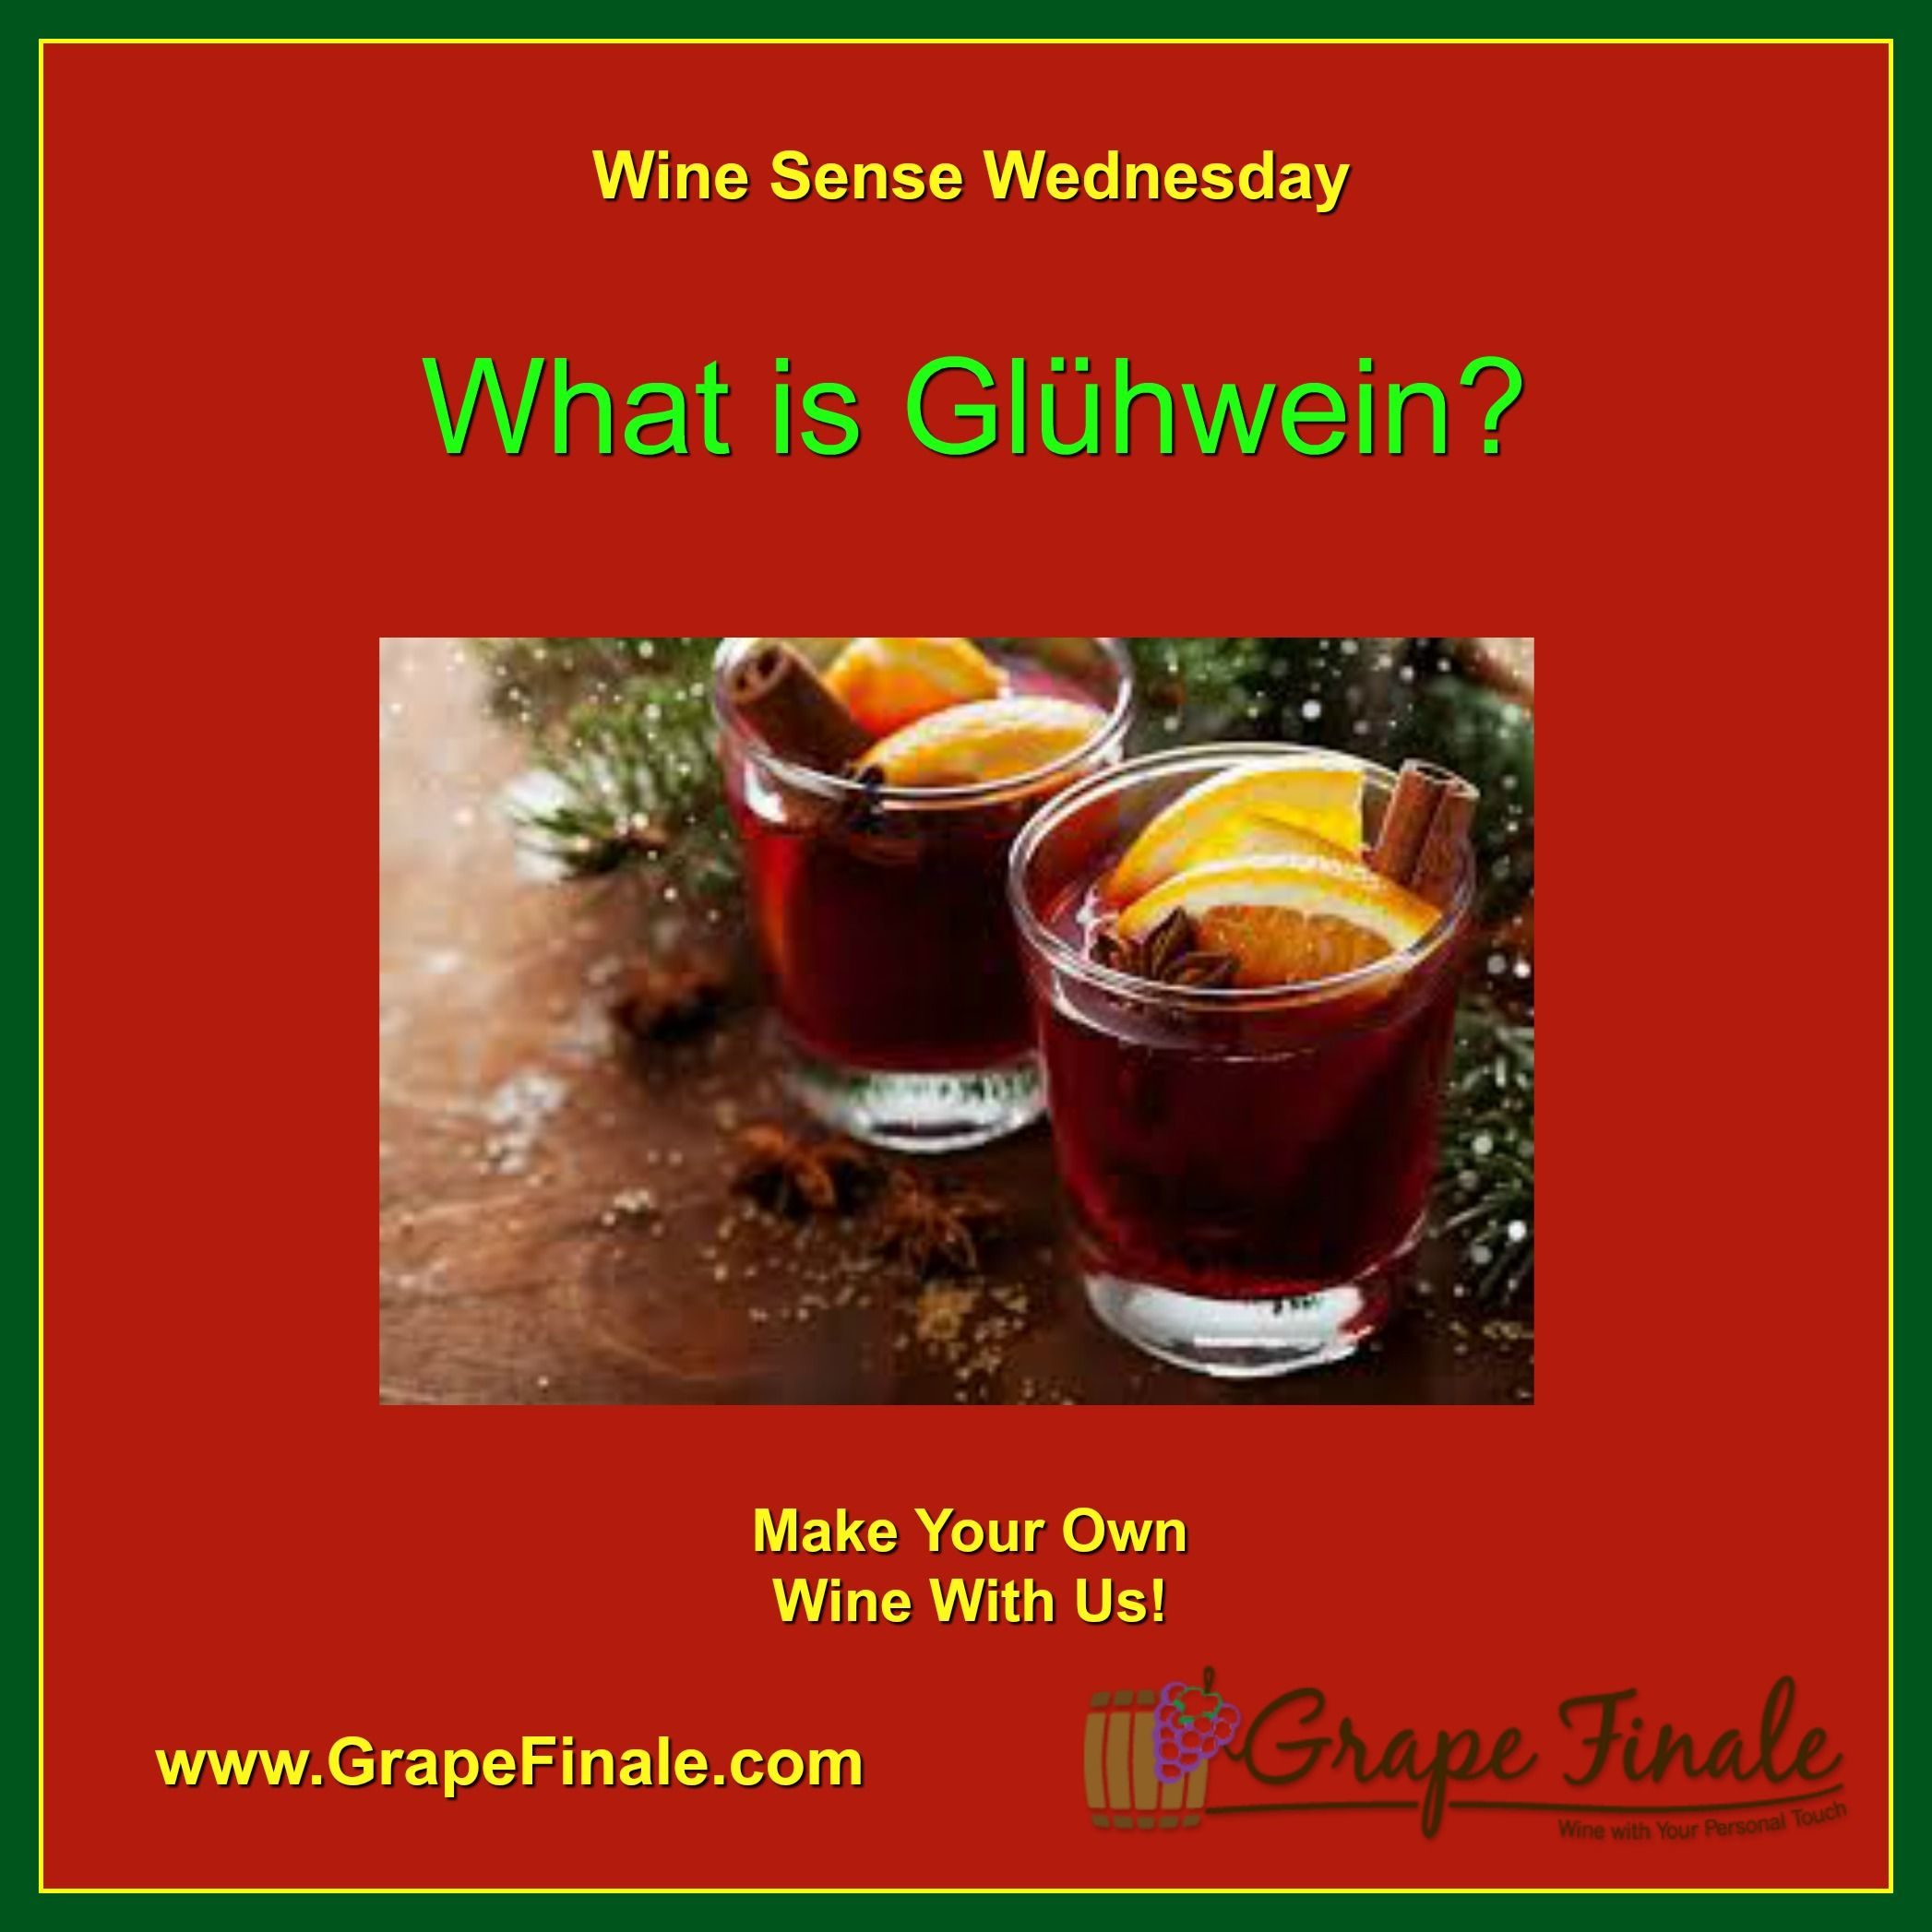 Gluhwein Glow Wine Or German Mulled Wine Is Served At Special Stands At Christkindl Markets Throughout Germany Mulled Wine Recipe Wine Recipes Mulled Wine